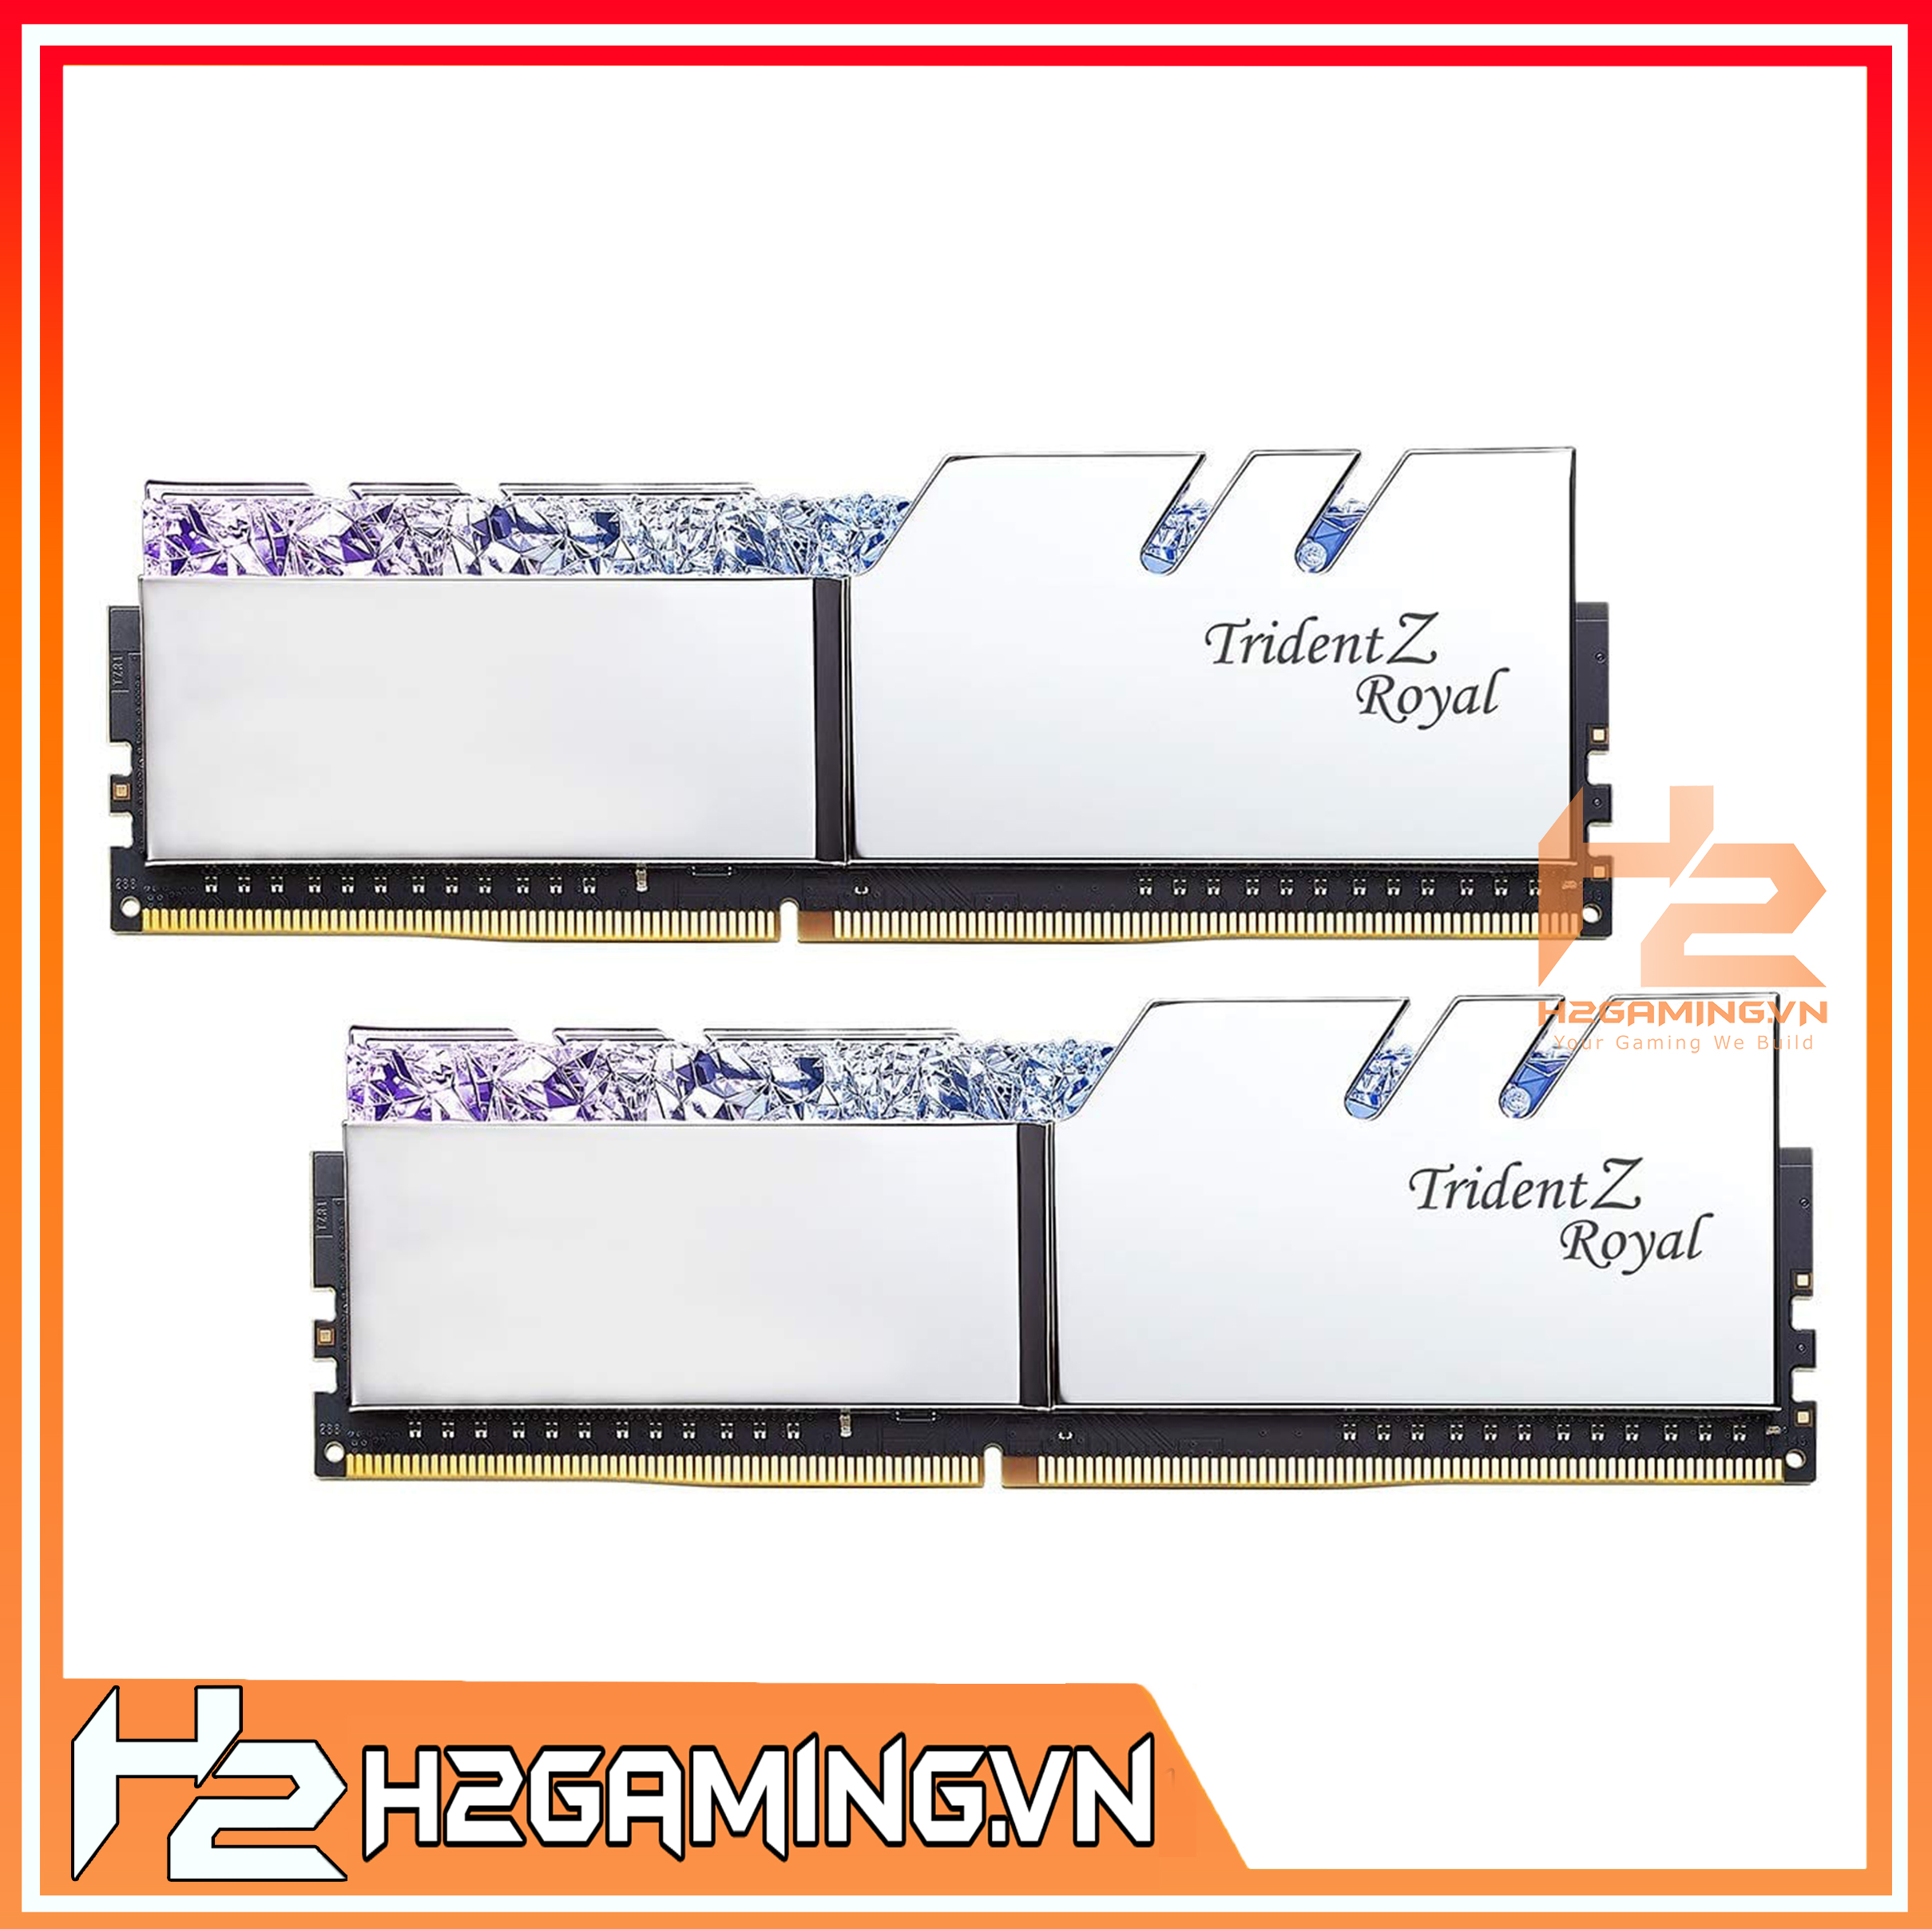 Ram_PC_Gksill_Enhanced_Performance_Series_-_Trident_Royal_Kit_Silver_3